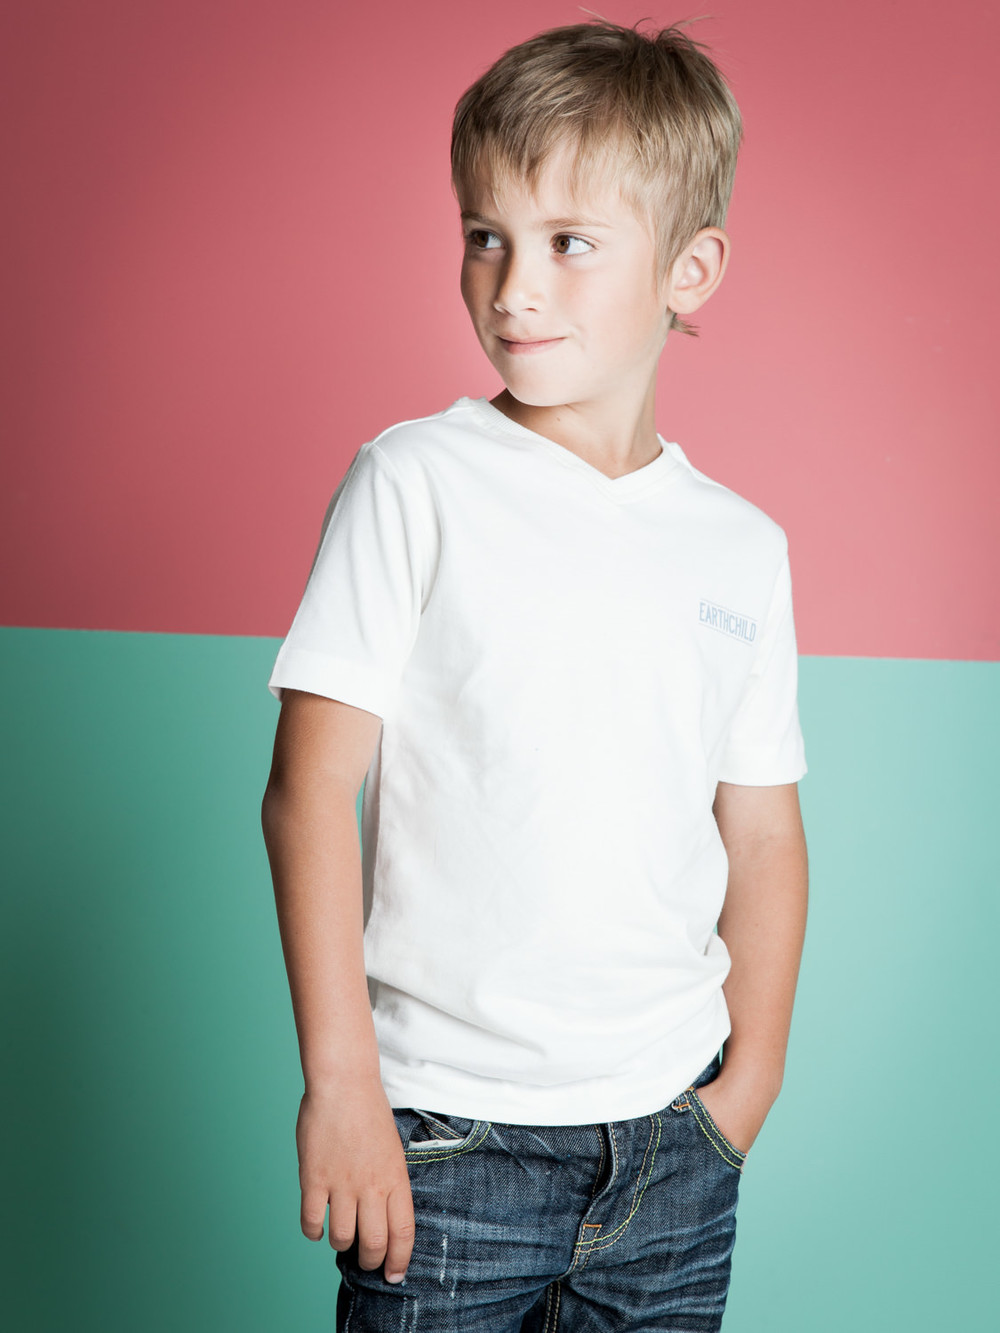 tim gerges capetown photographer kids fashion-3044.jpg